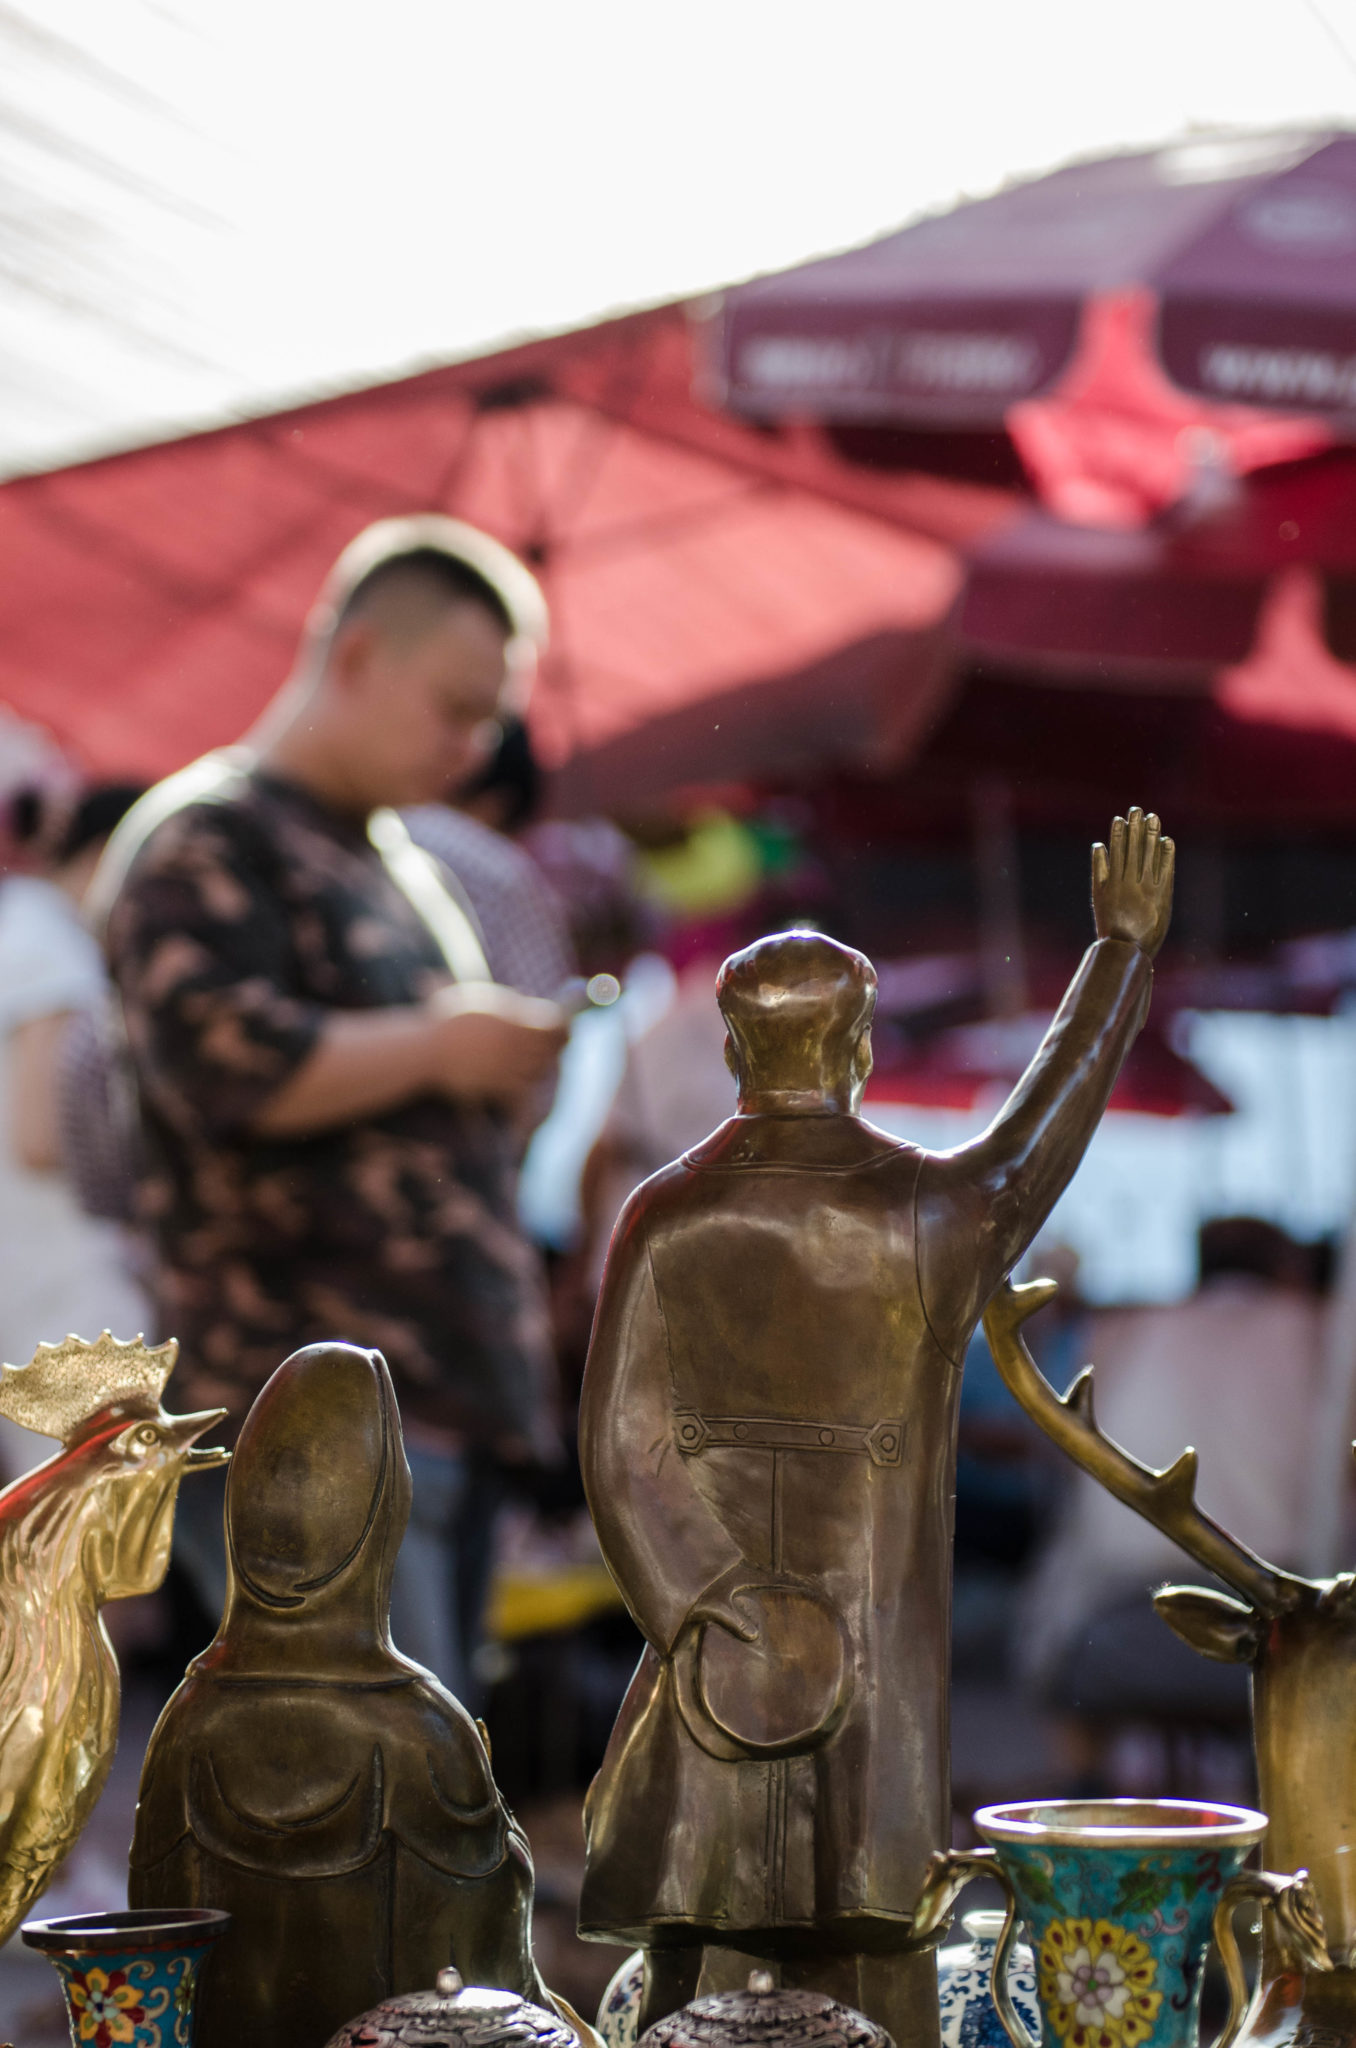 The Panjiayuan Antique Market in Beijing: Mao statues can be found along the entire market